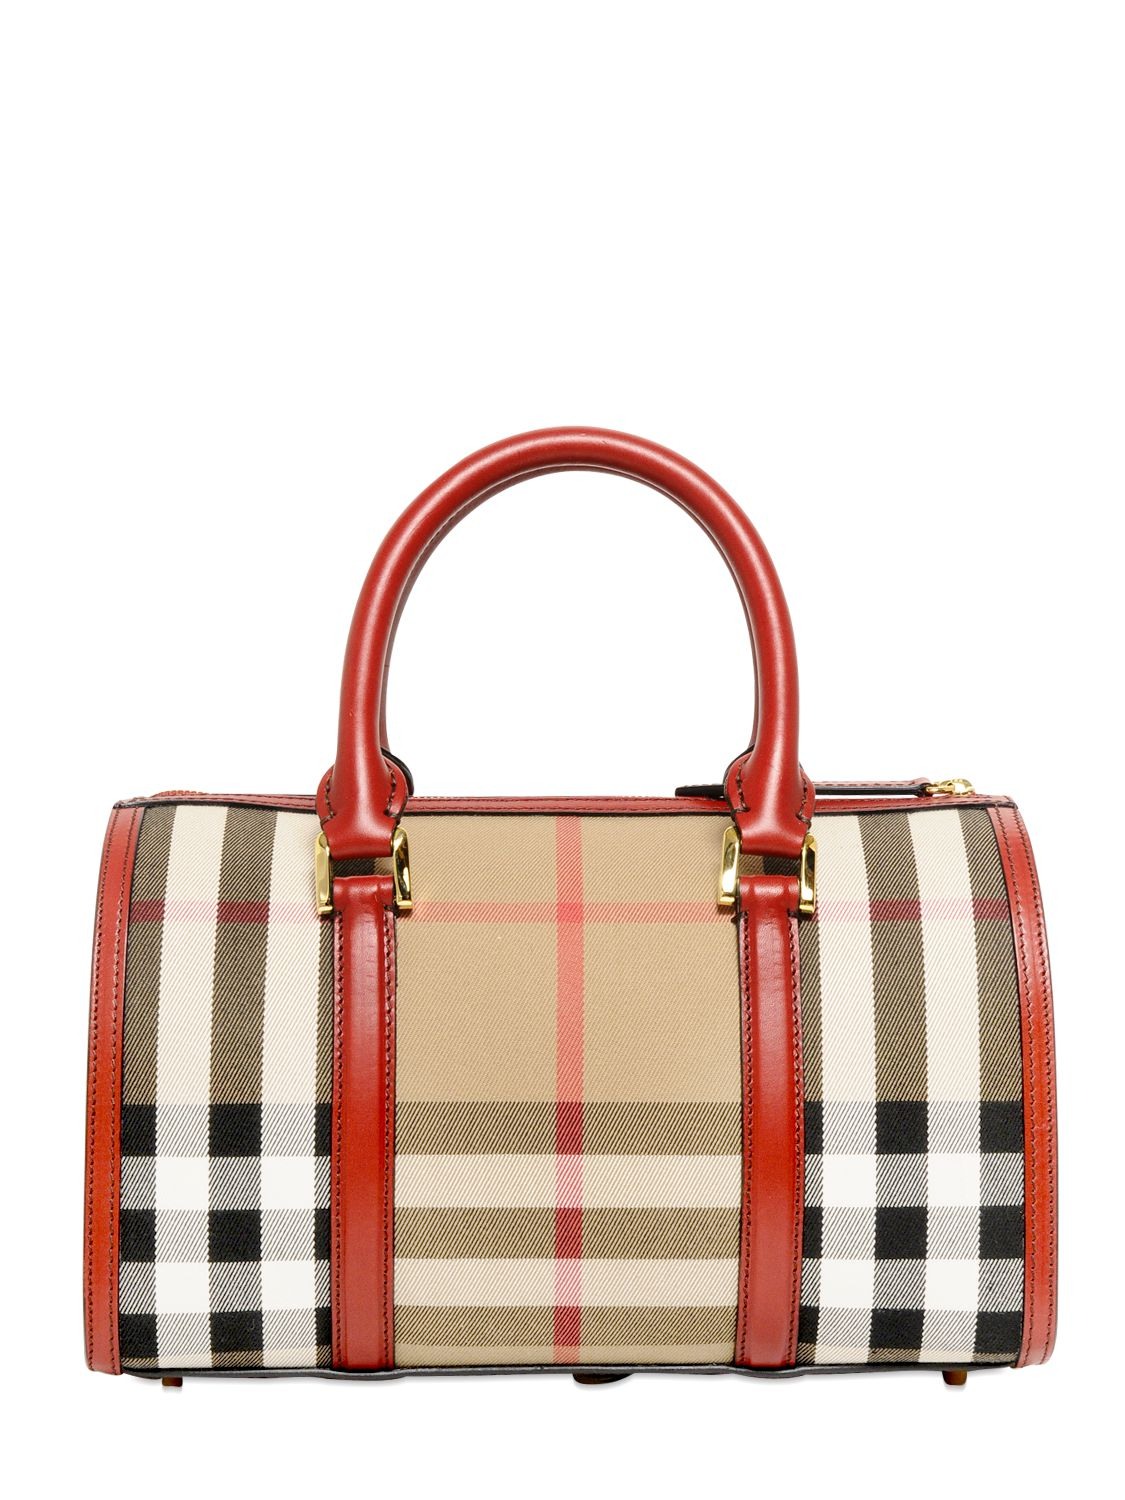 1c5426e78650 Lyst - Burberry Medium Alchester Bridle House Check Bag in Red